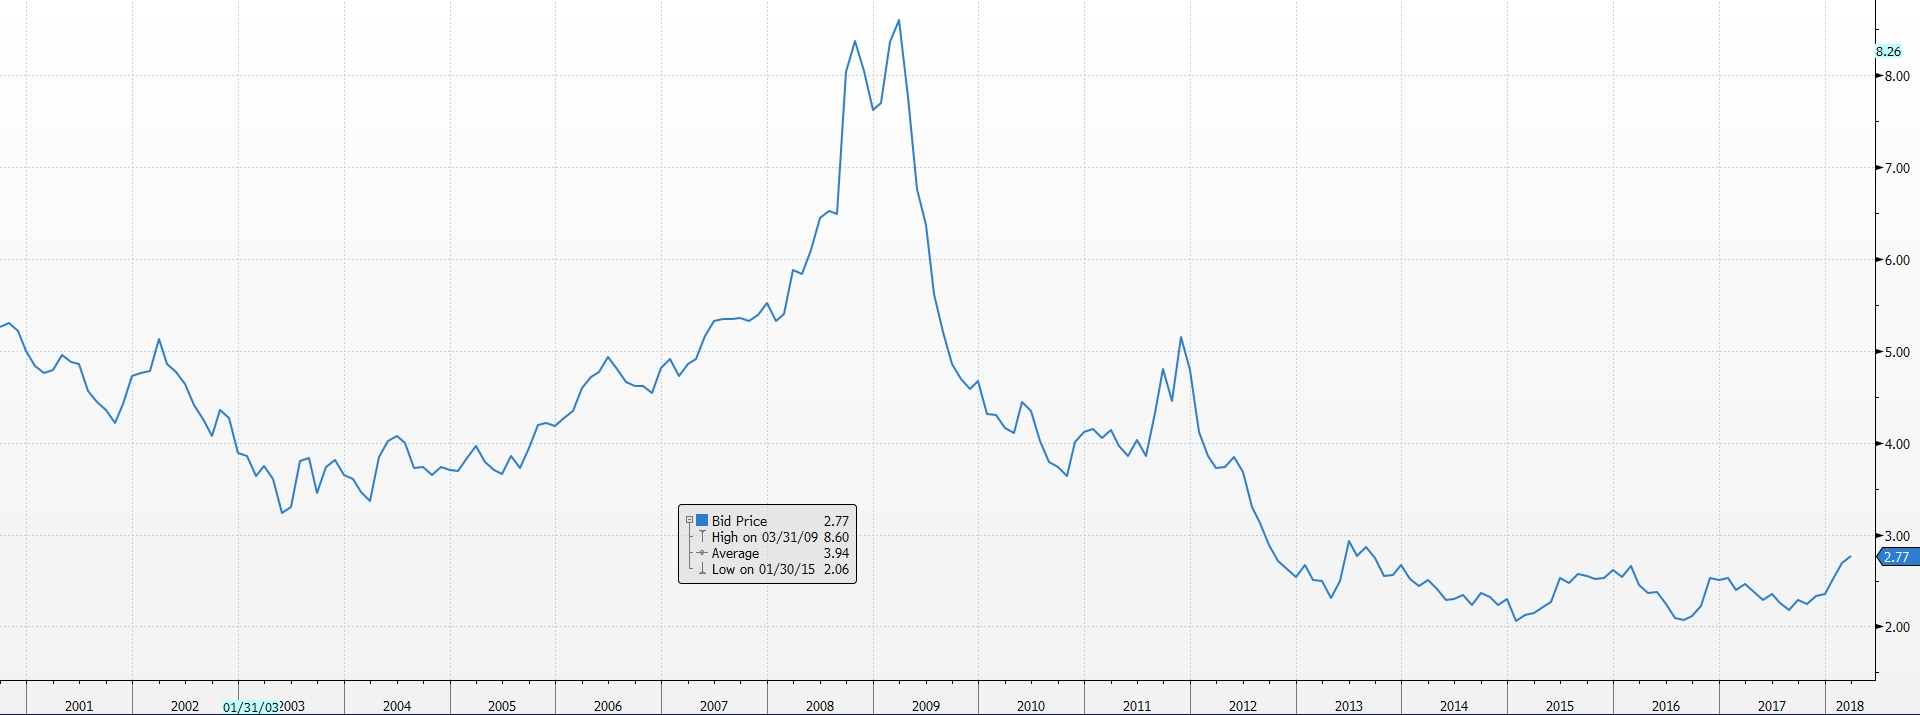 Bloomberg Barclays Global Aggregate Financial Yield to Worst